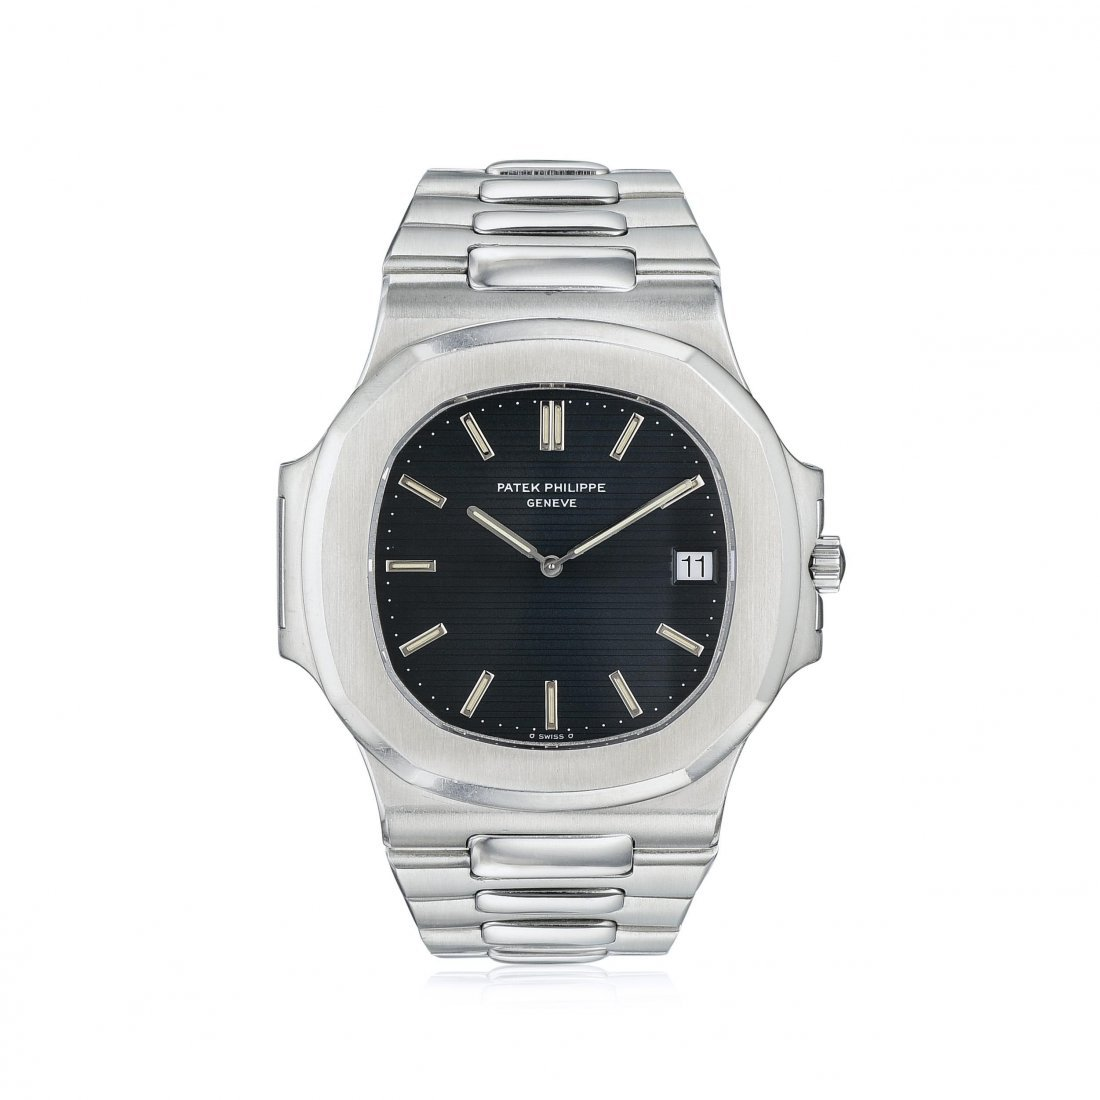 Patek Philippe Nautilus Ref. 3700/1 in Steel - 2